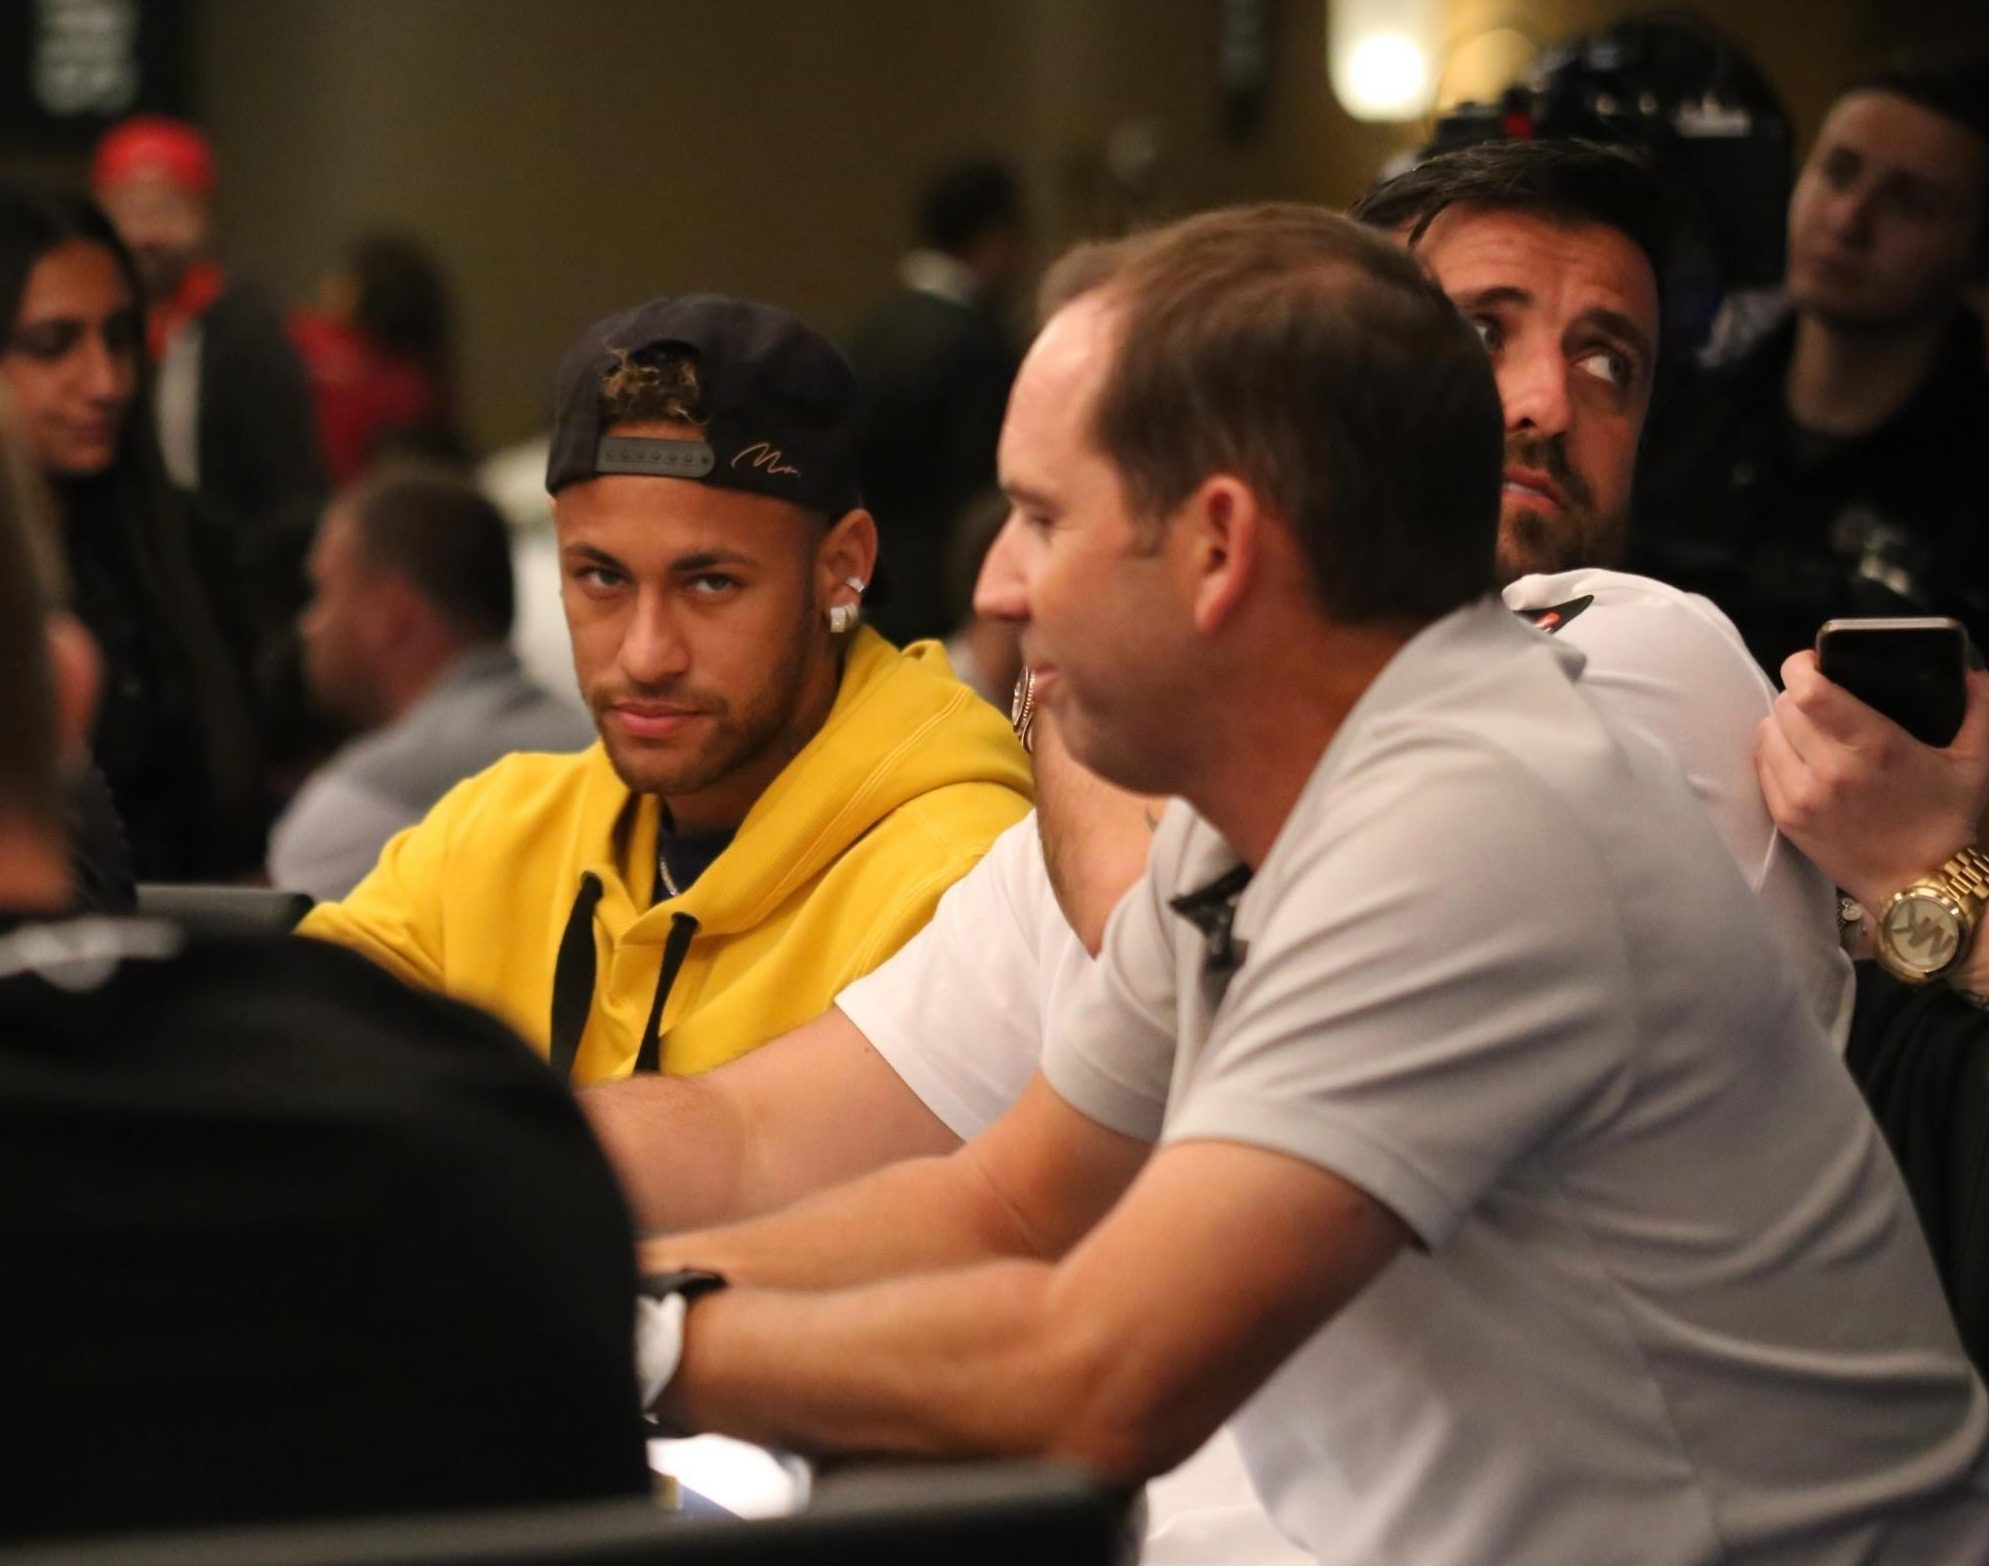 Sergio Garcia missed out on the final chance to impress on the golf course in favour of playing poker with Neymar